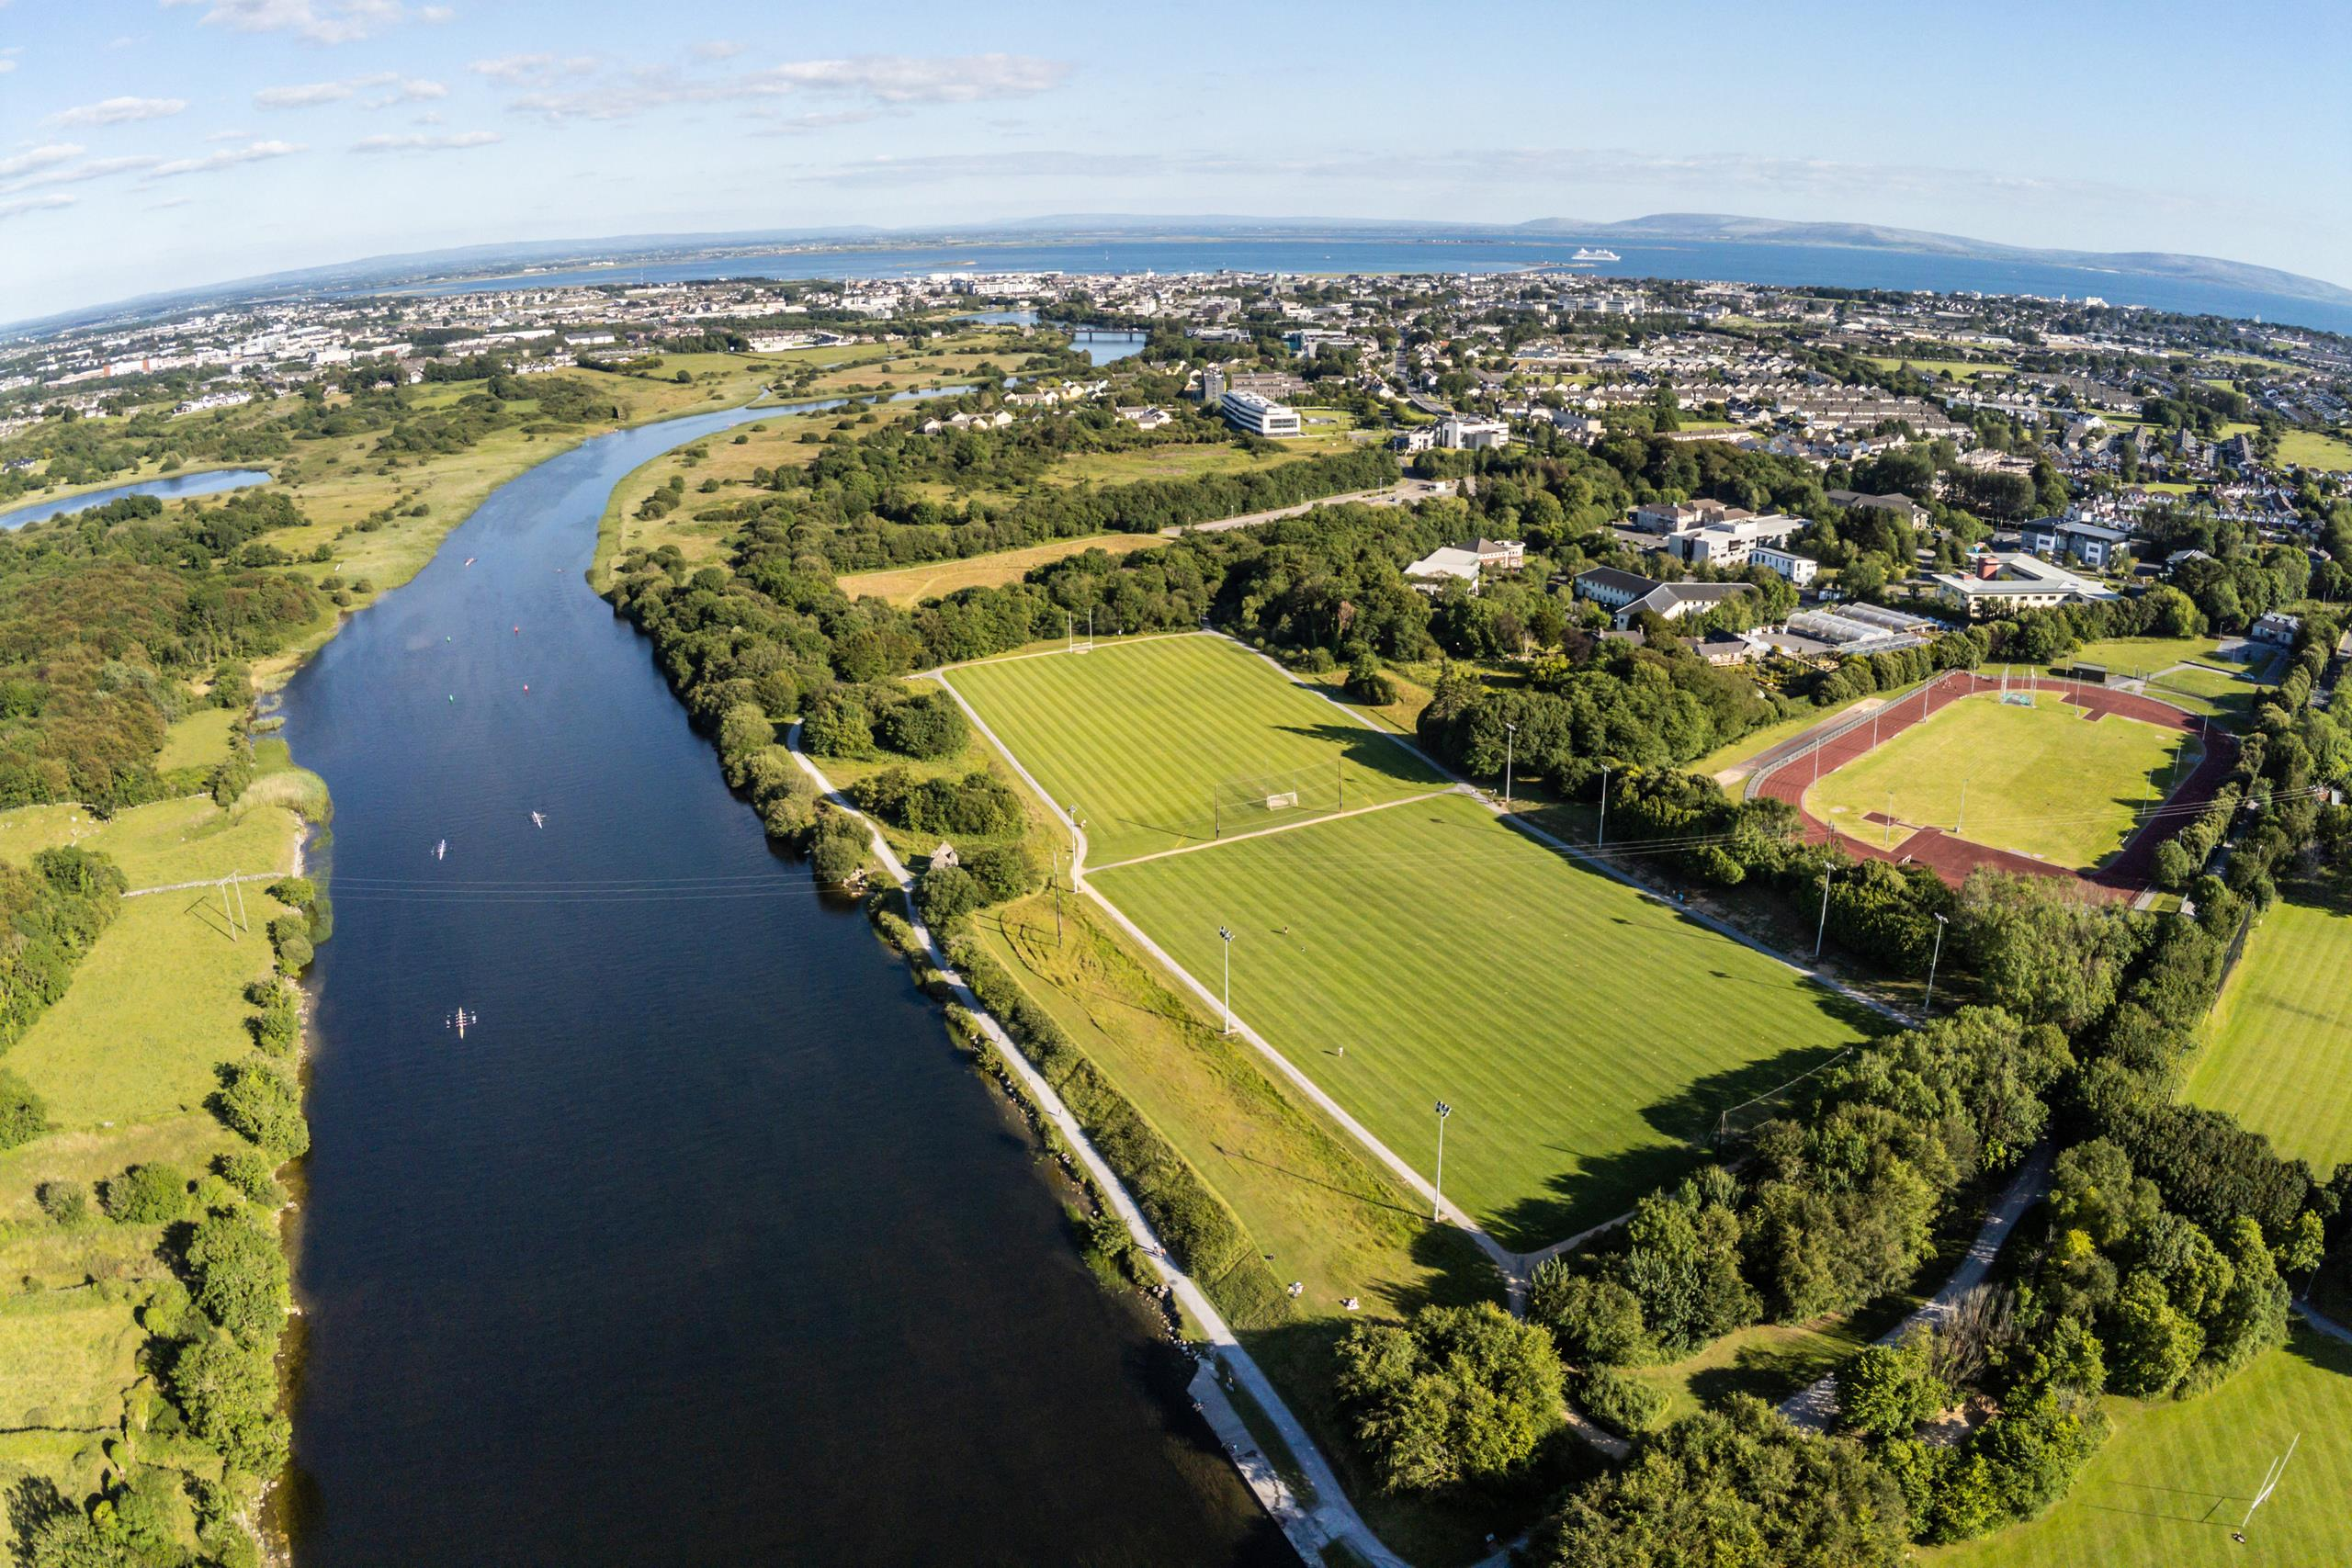 Aerial view of Corrib River and Galway city